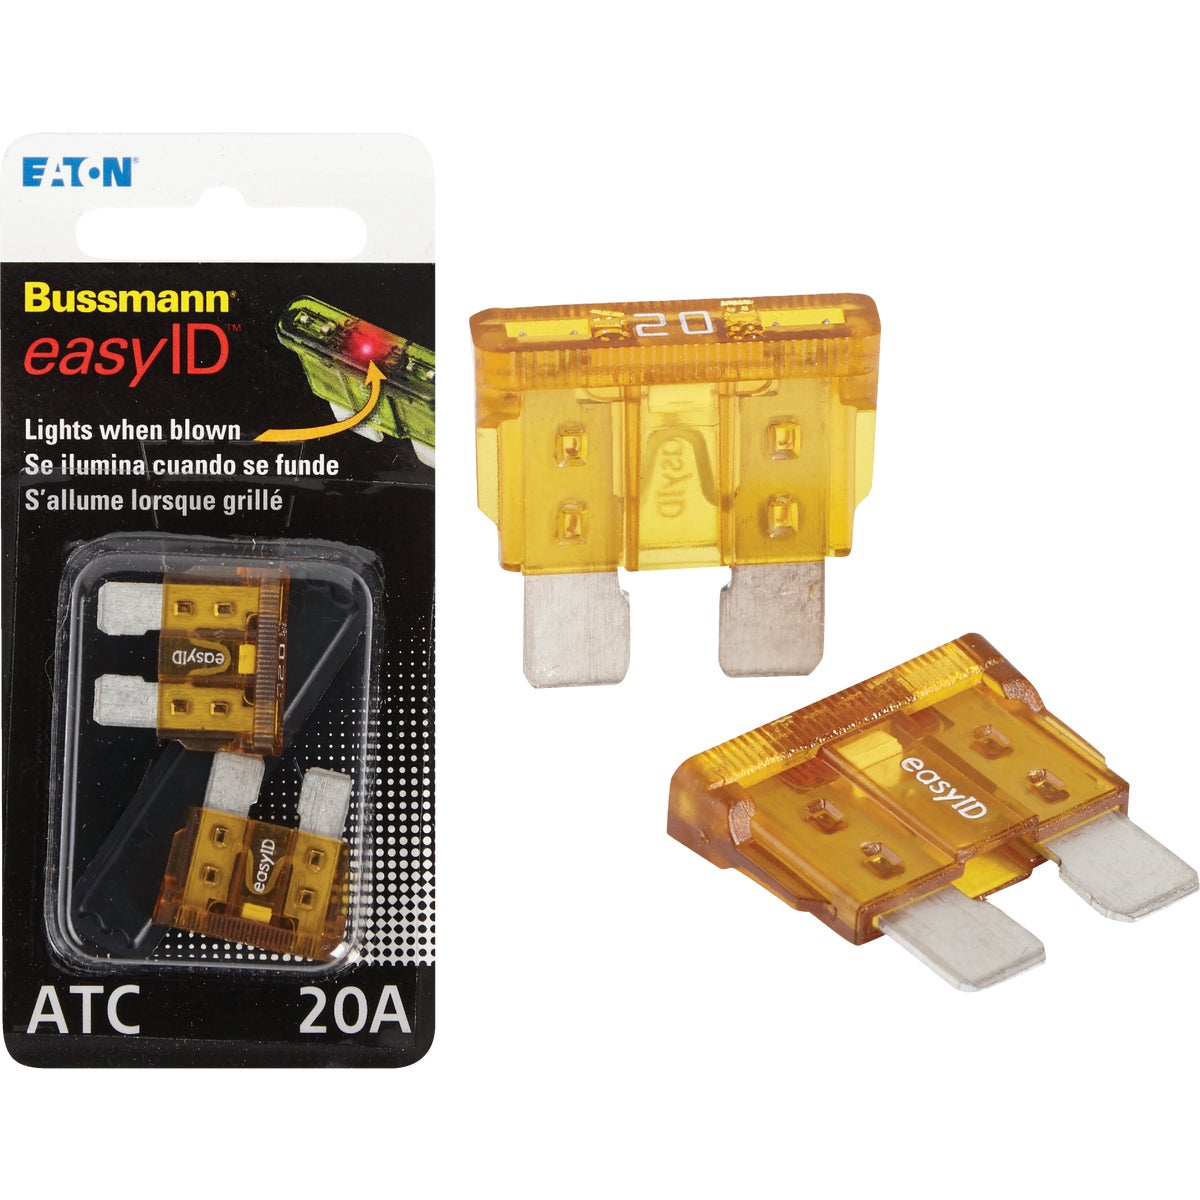 2PK 20A ATC EASY ID FUSE - BP/ATC-20ID by Bussmann Cooper